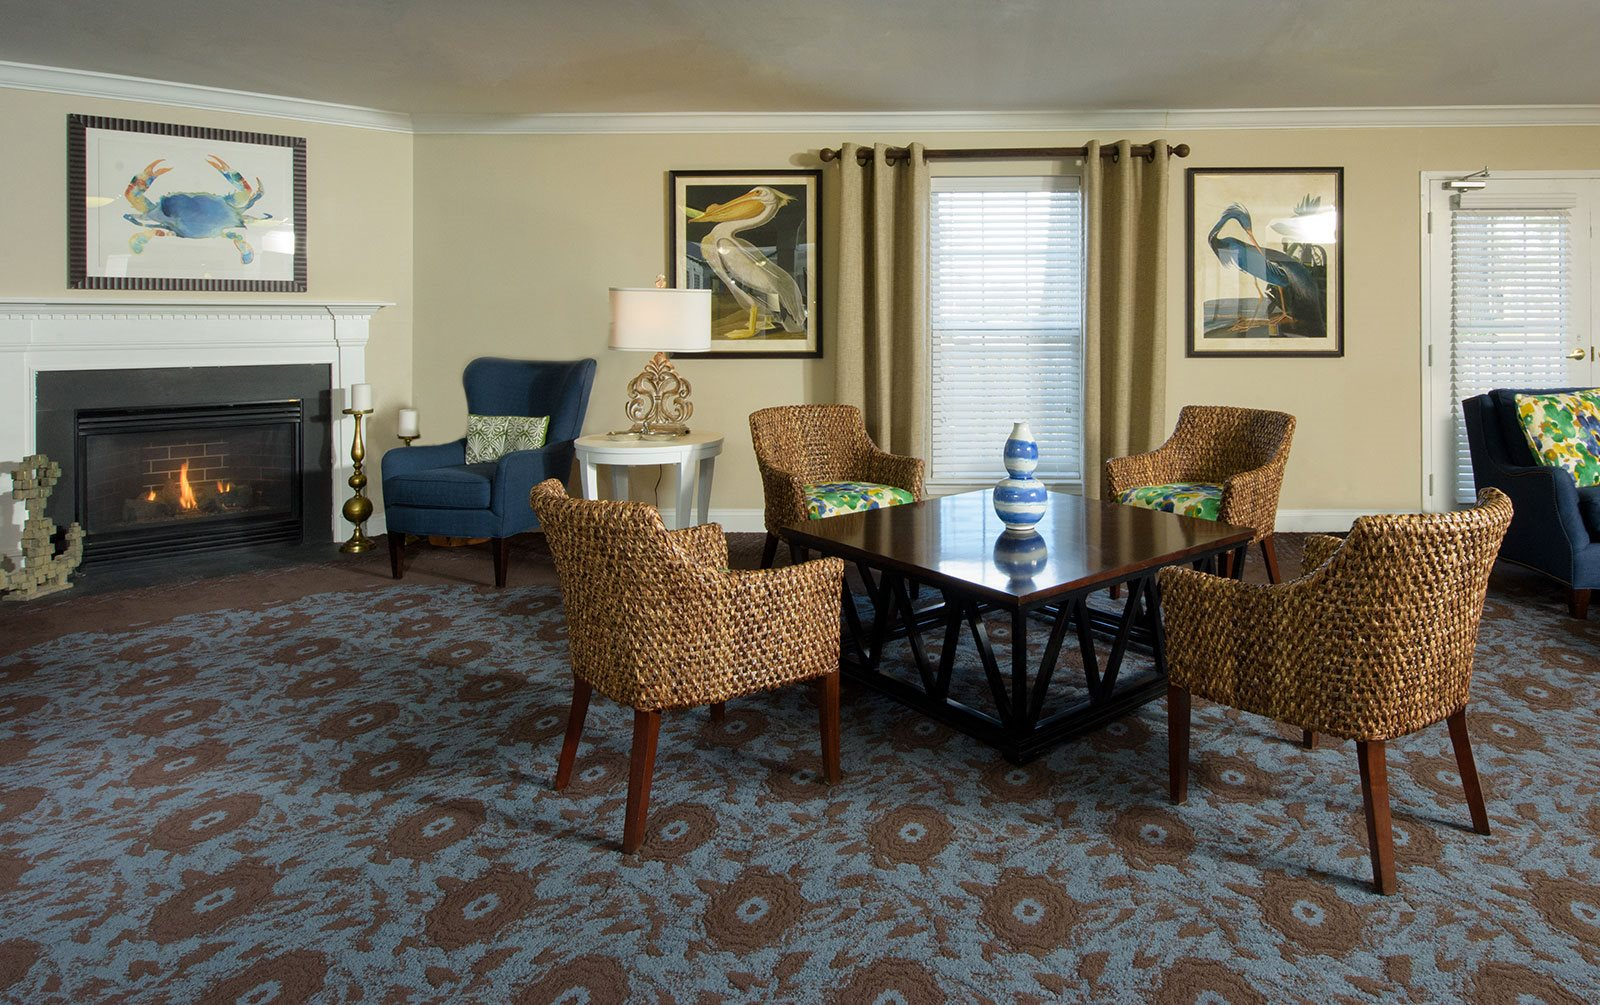 Gardens of Annapolis | Apartments in Annapolis, MD